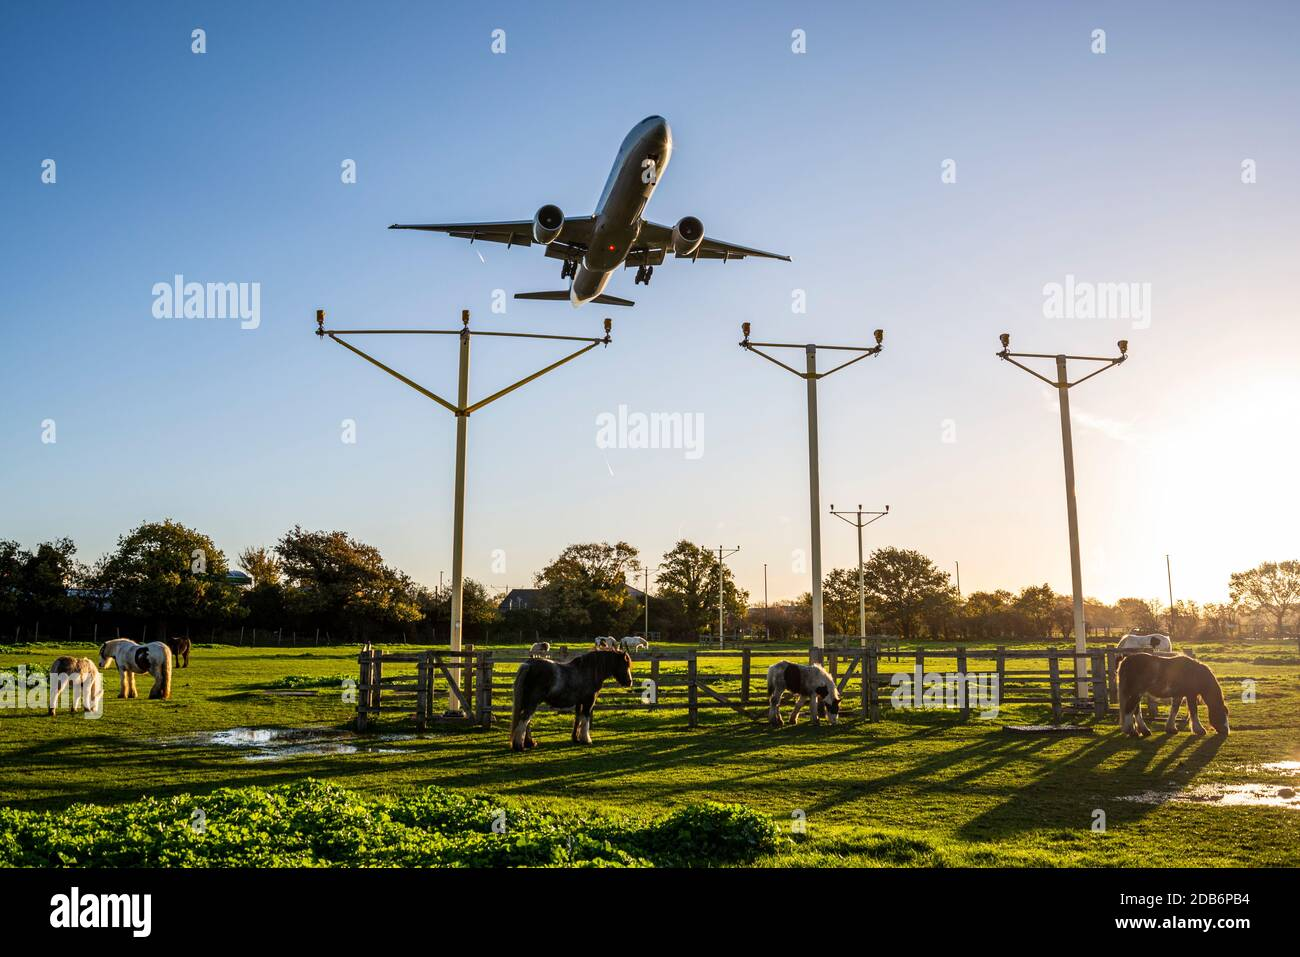 jet-airliner-plane-on-approach-to-land-at-london-heathrow-airport-uk-flying-over-a-field-with-horses-landing-system-approach-lights-dawn-sunlight-2DB6PB4.jpg